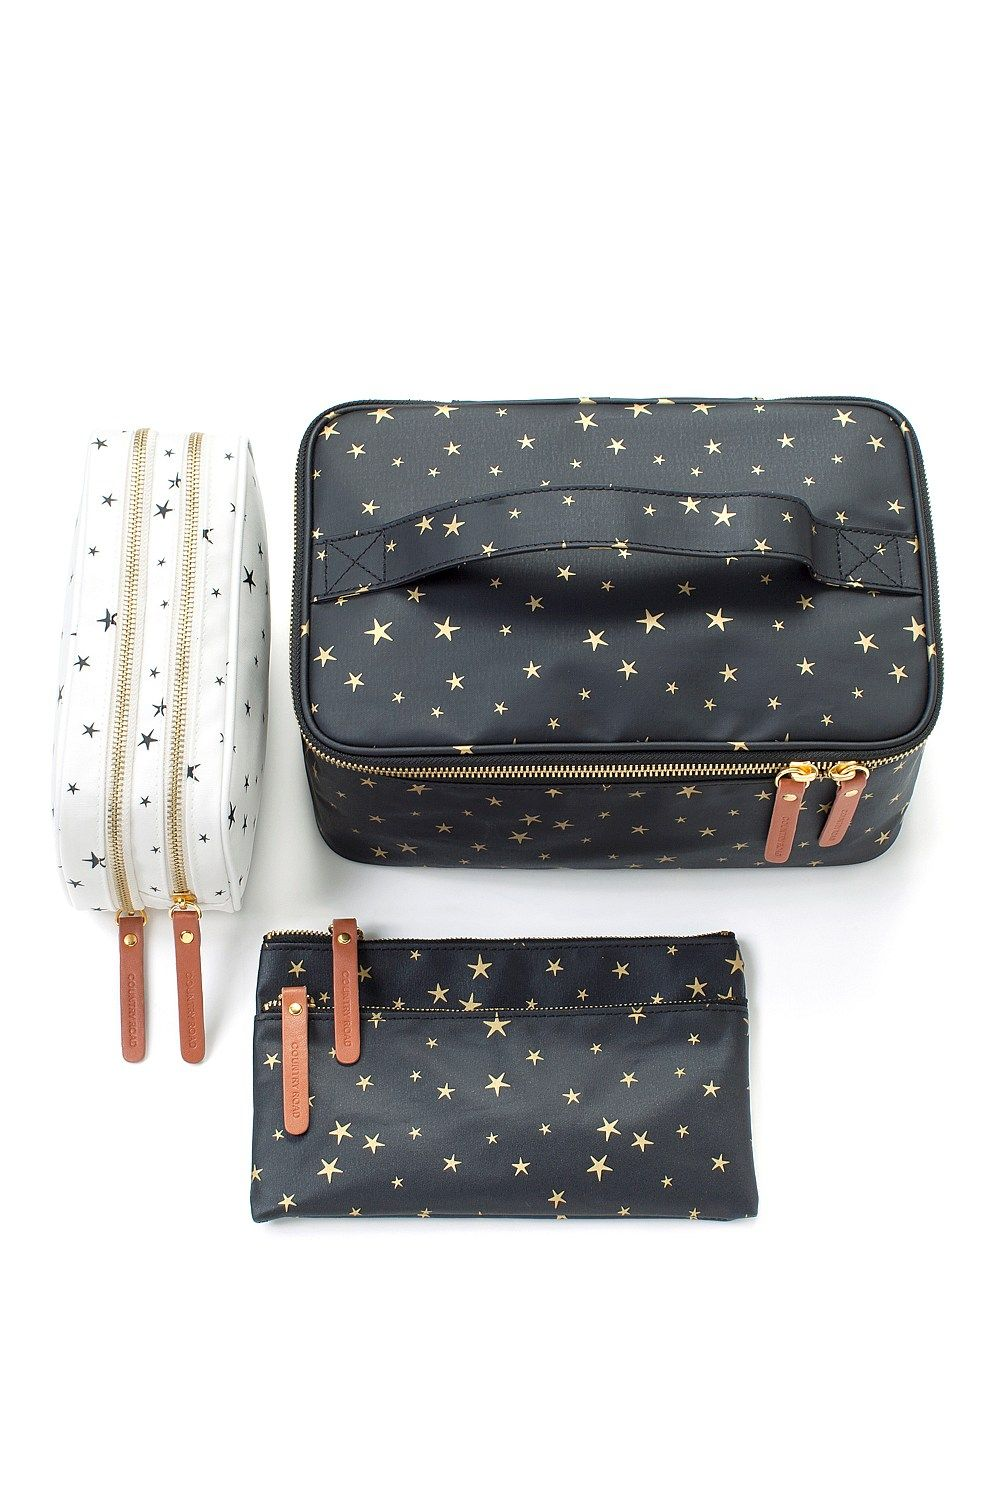 5b0870c34f Star Large Cosmetic Bag | A Bagful in 2019 | Large cosmetic bag ...